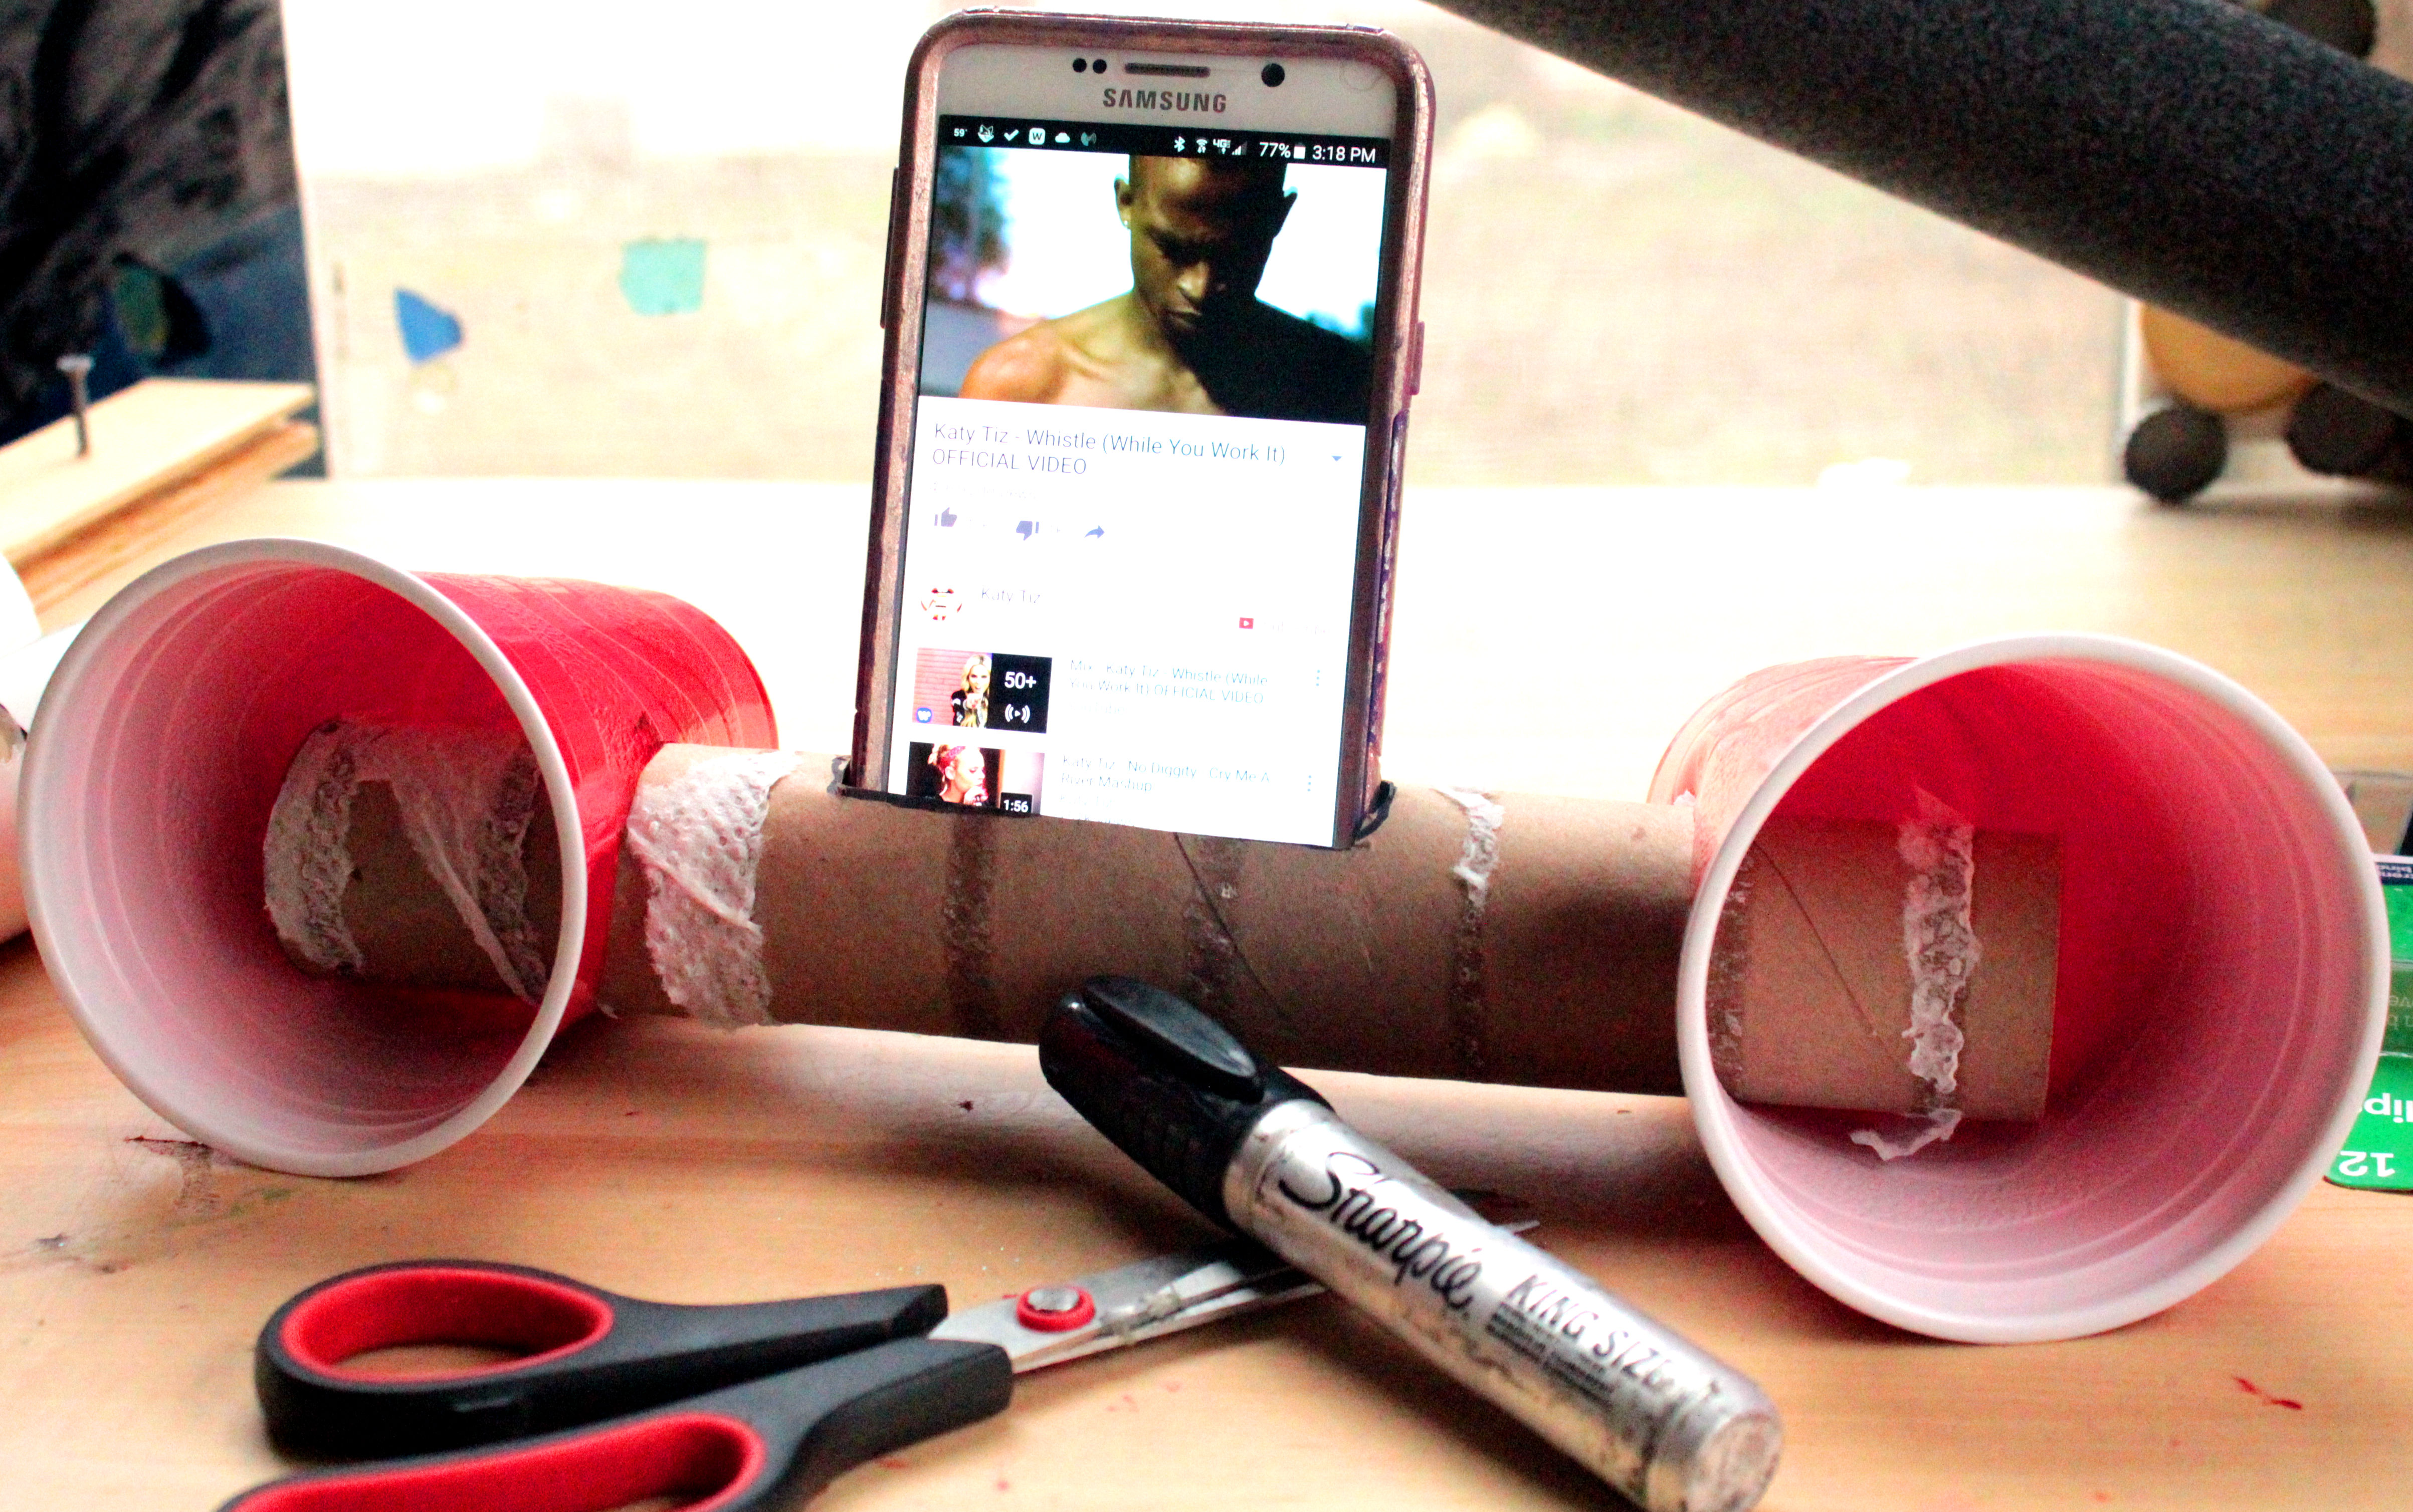 Plastic cups and a cardboard tube